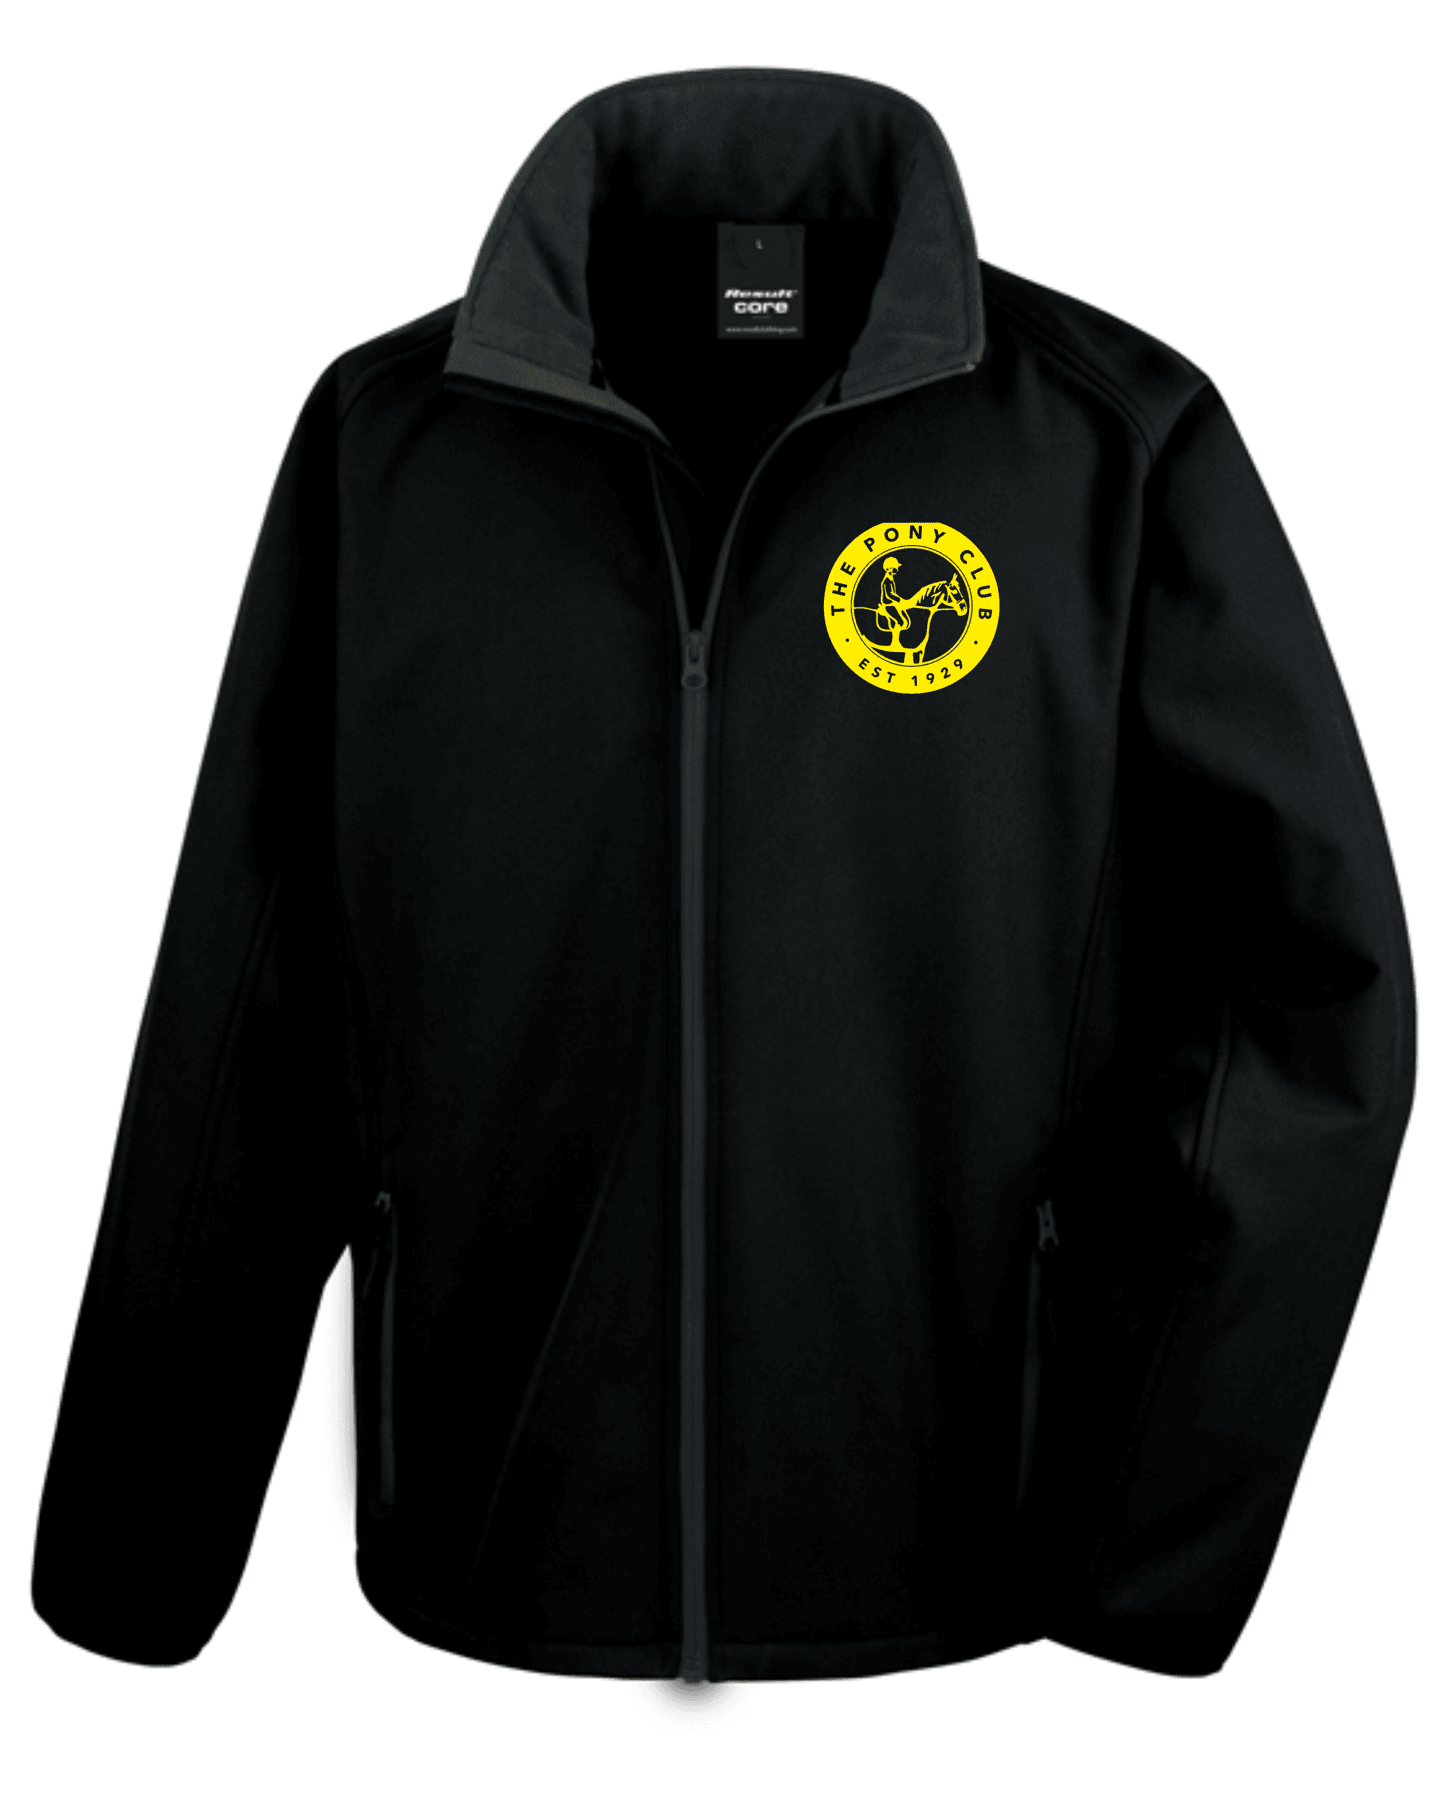 Littleport & District Pony Club – Softshell Unisex